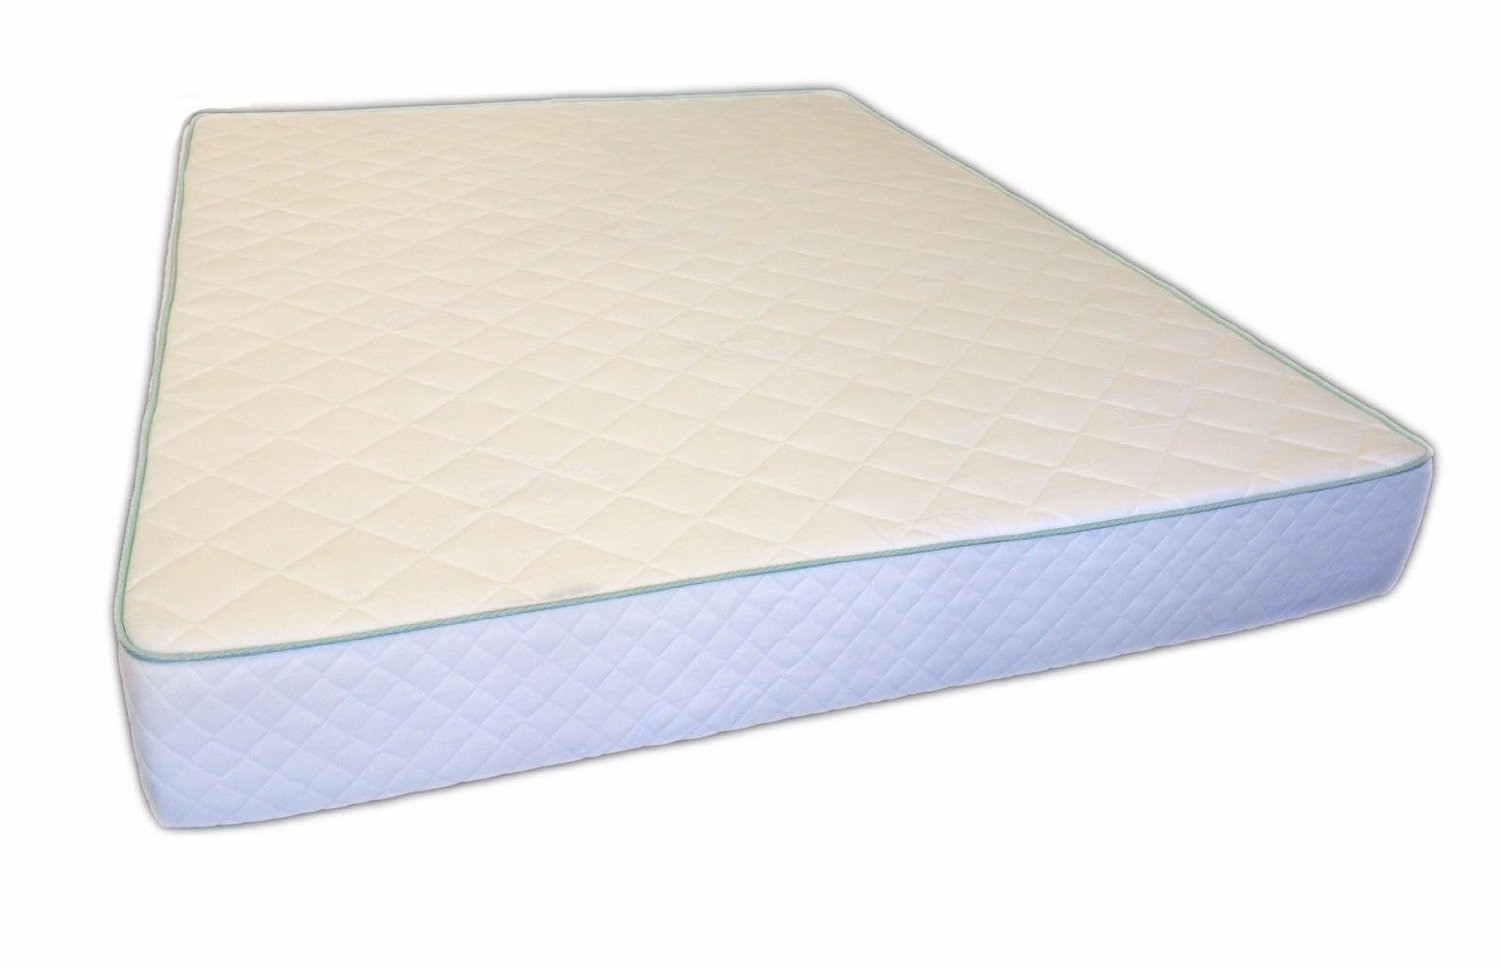 Latex Matress Natural Dunlop Latex Futon Mattress Onyx